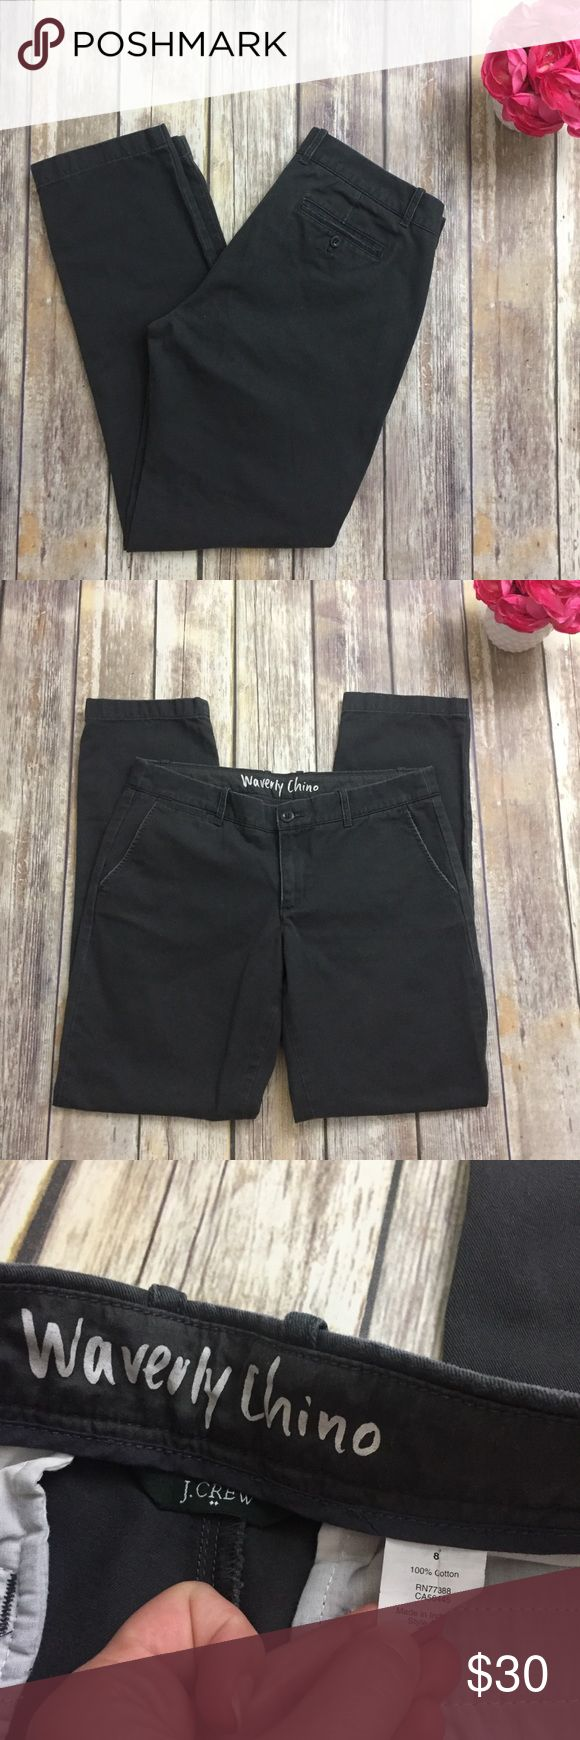 """J Crew Waverly Chino Pants in Charcoal Gray J Crew """"Waverly Chino"""" in a charcoal gray color and size 8. Excellent condition with no flaws. Approximate measurements are: waist 32"""", inseam 31"""". ⚓No trades or holds. I negotiate only through the offer button. Any measurements listed are approximate since I am not a seamstress. 🚭🐩T4 J. Crew Pants Trousers"""